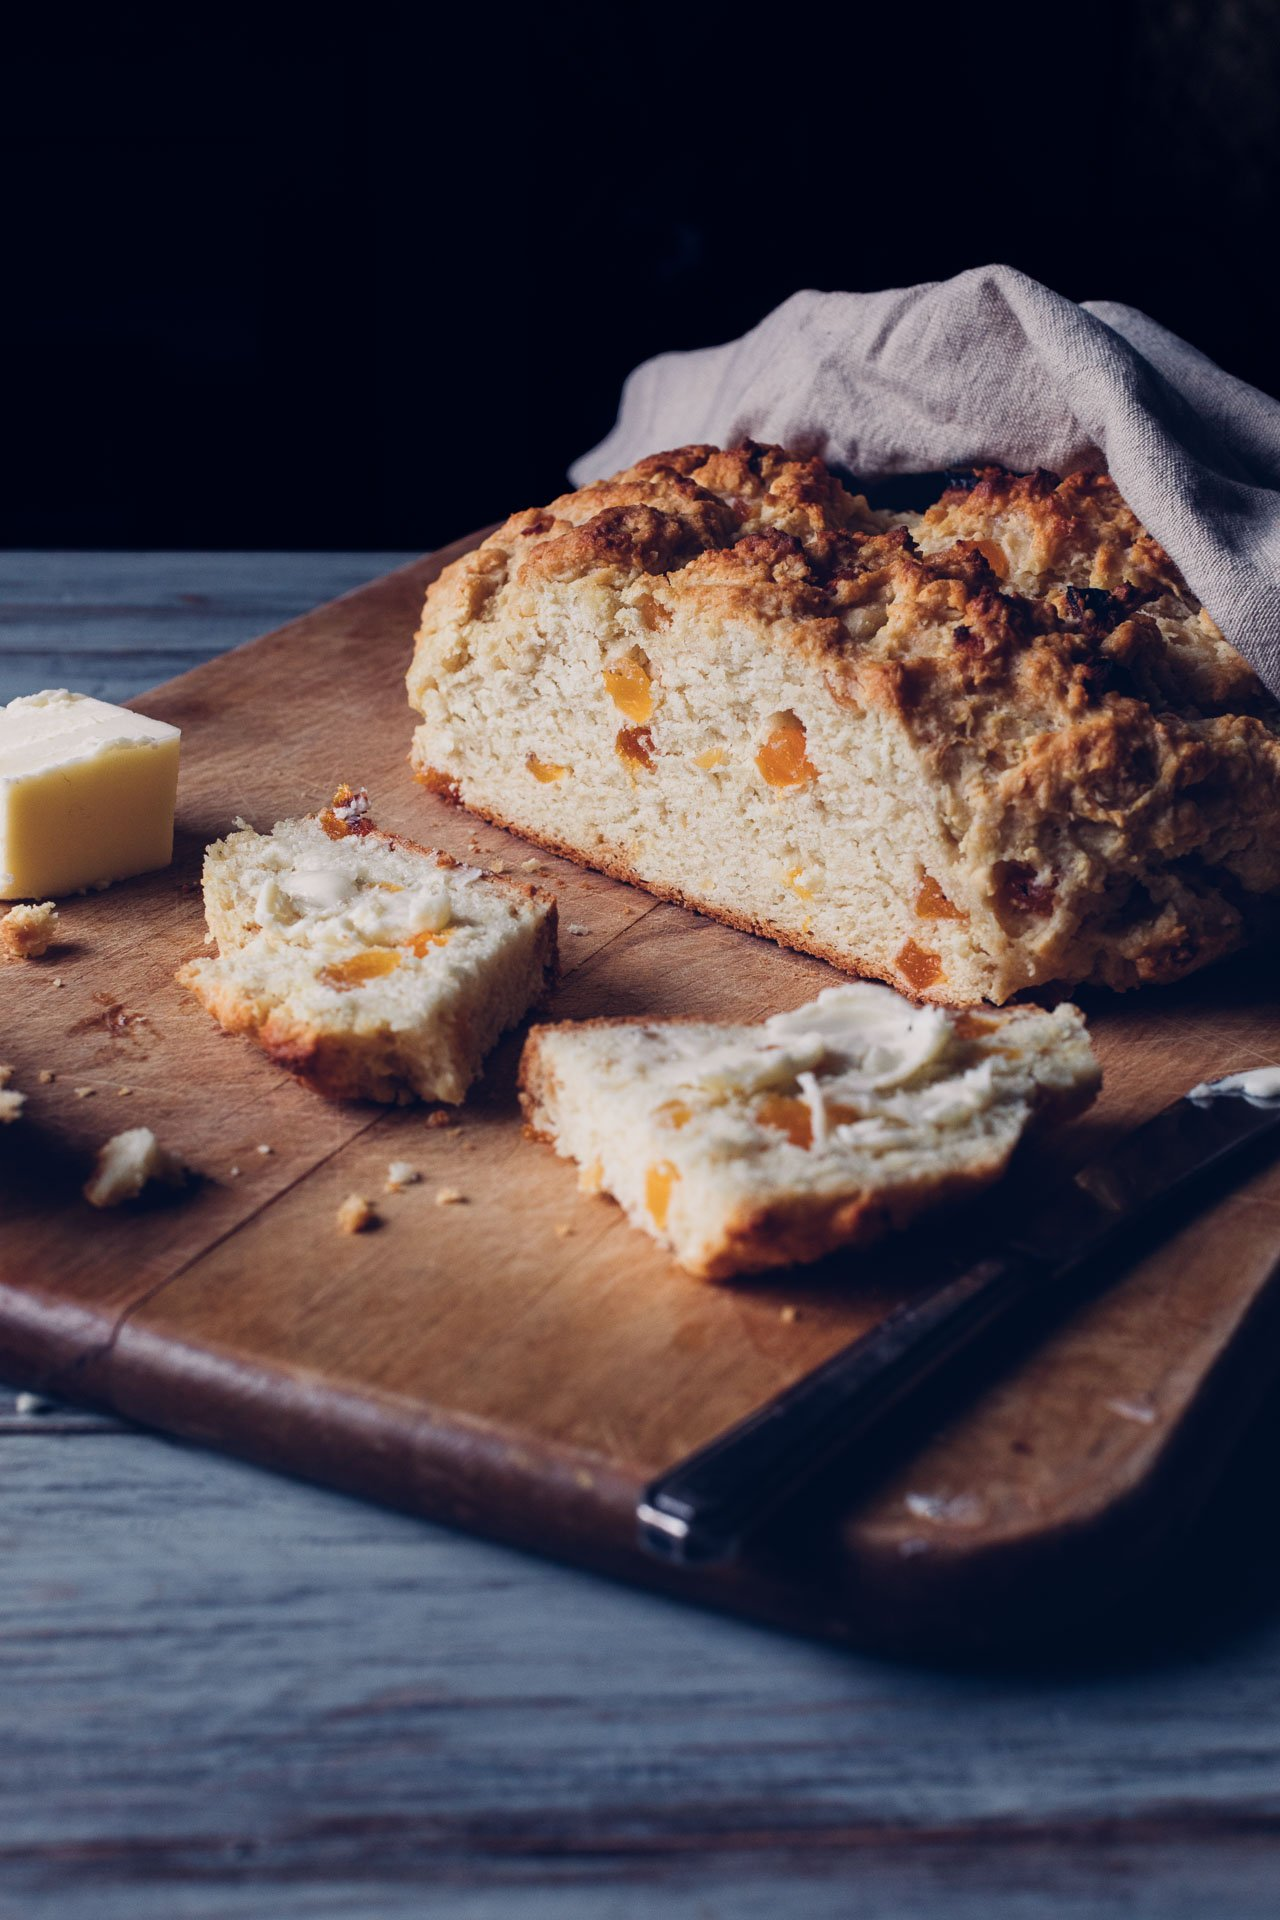 Irish Soda Bread with Dried Apricots | HonestlyYUM (honestlyyum.com)